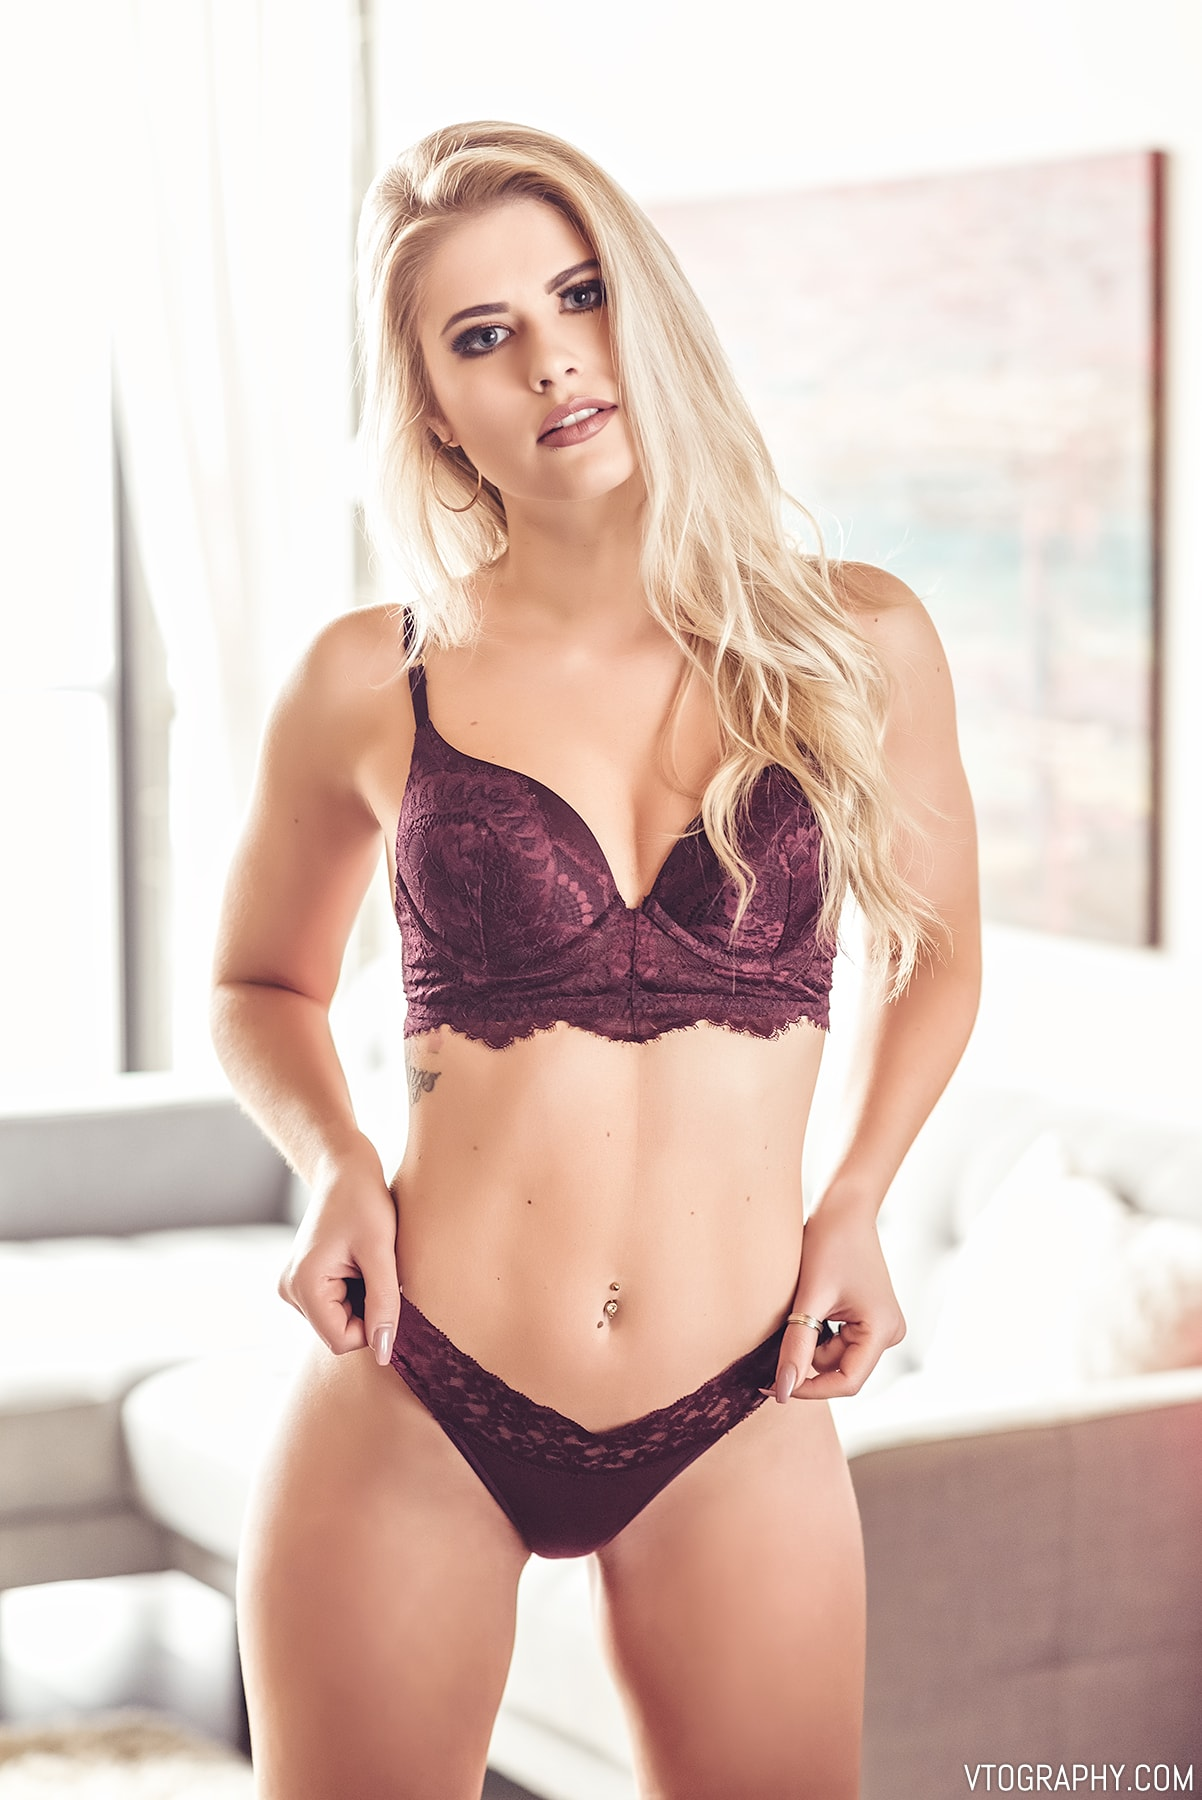 Sami in burgundy lingerie from La Senza